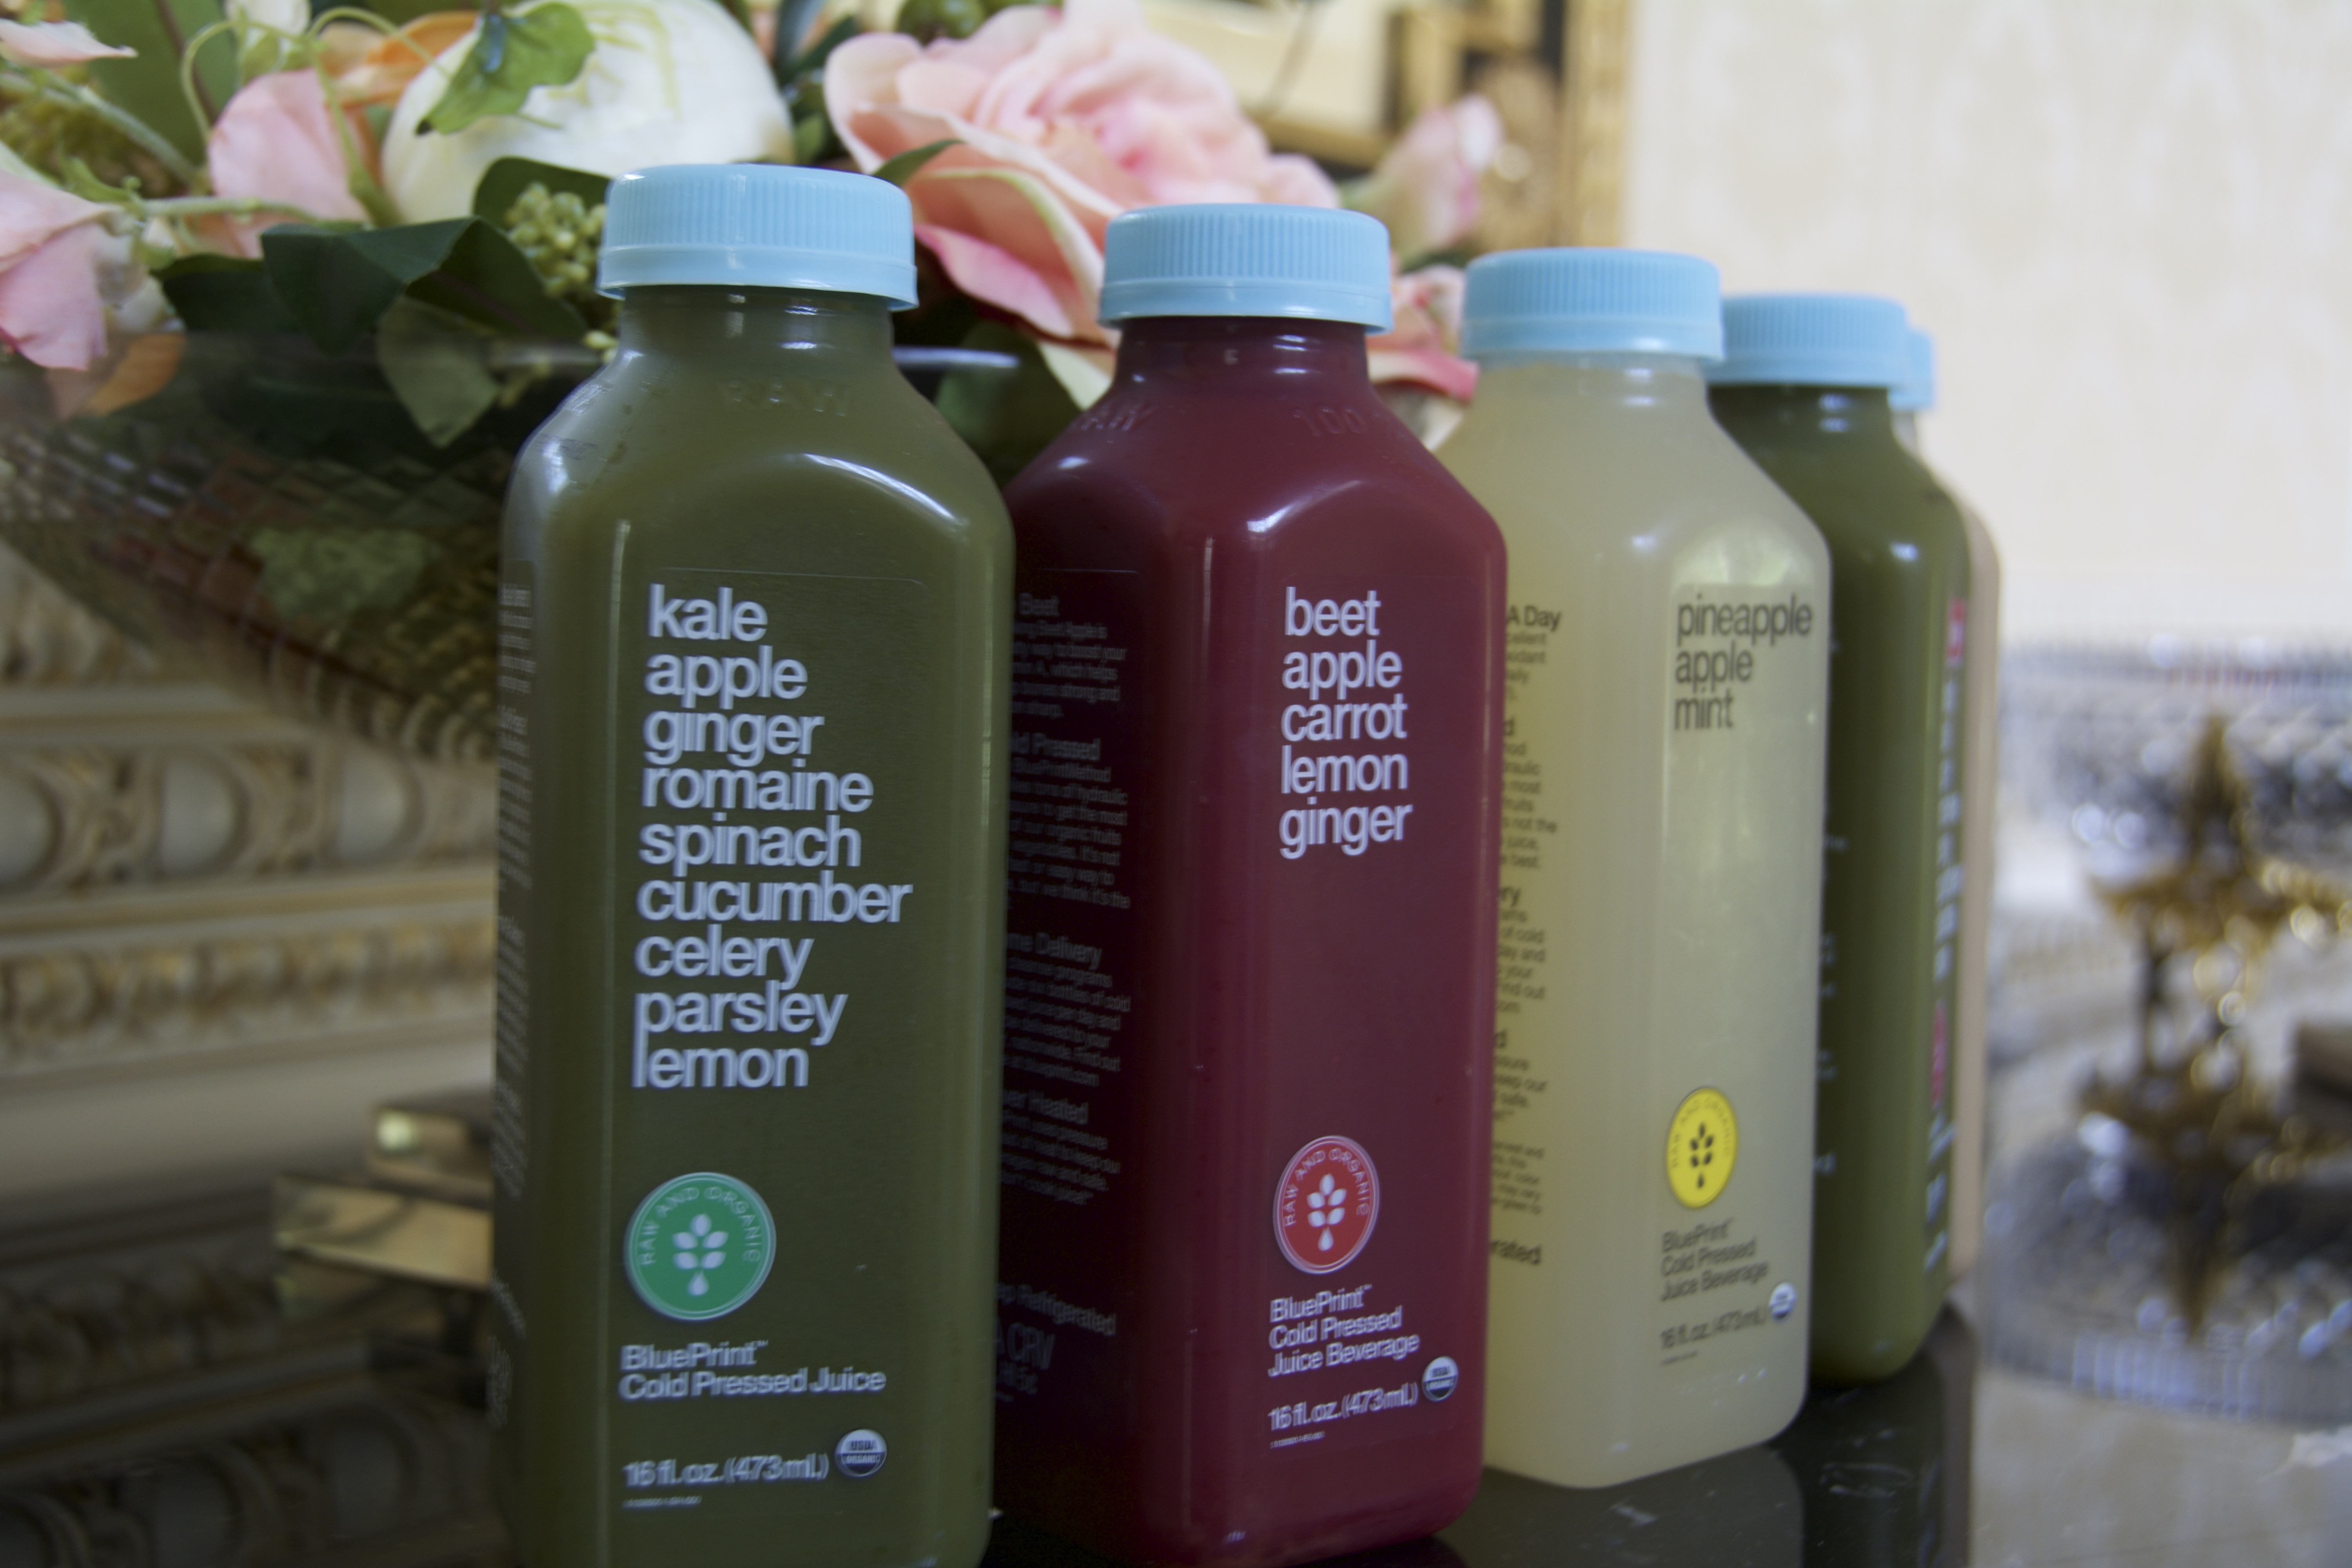 Cleansing subtotaled i am talking all about cleansing your body today with my favorite juice cleanse i love cleaning my body of toxins through the blueprint cleanse system malvernweather Choice Image